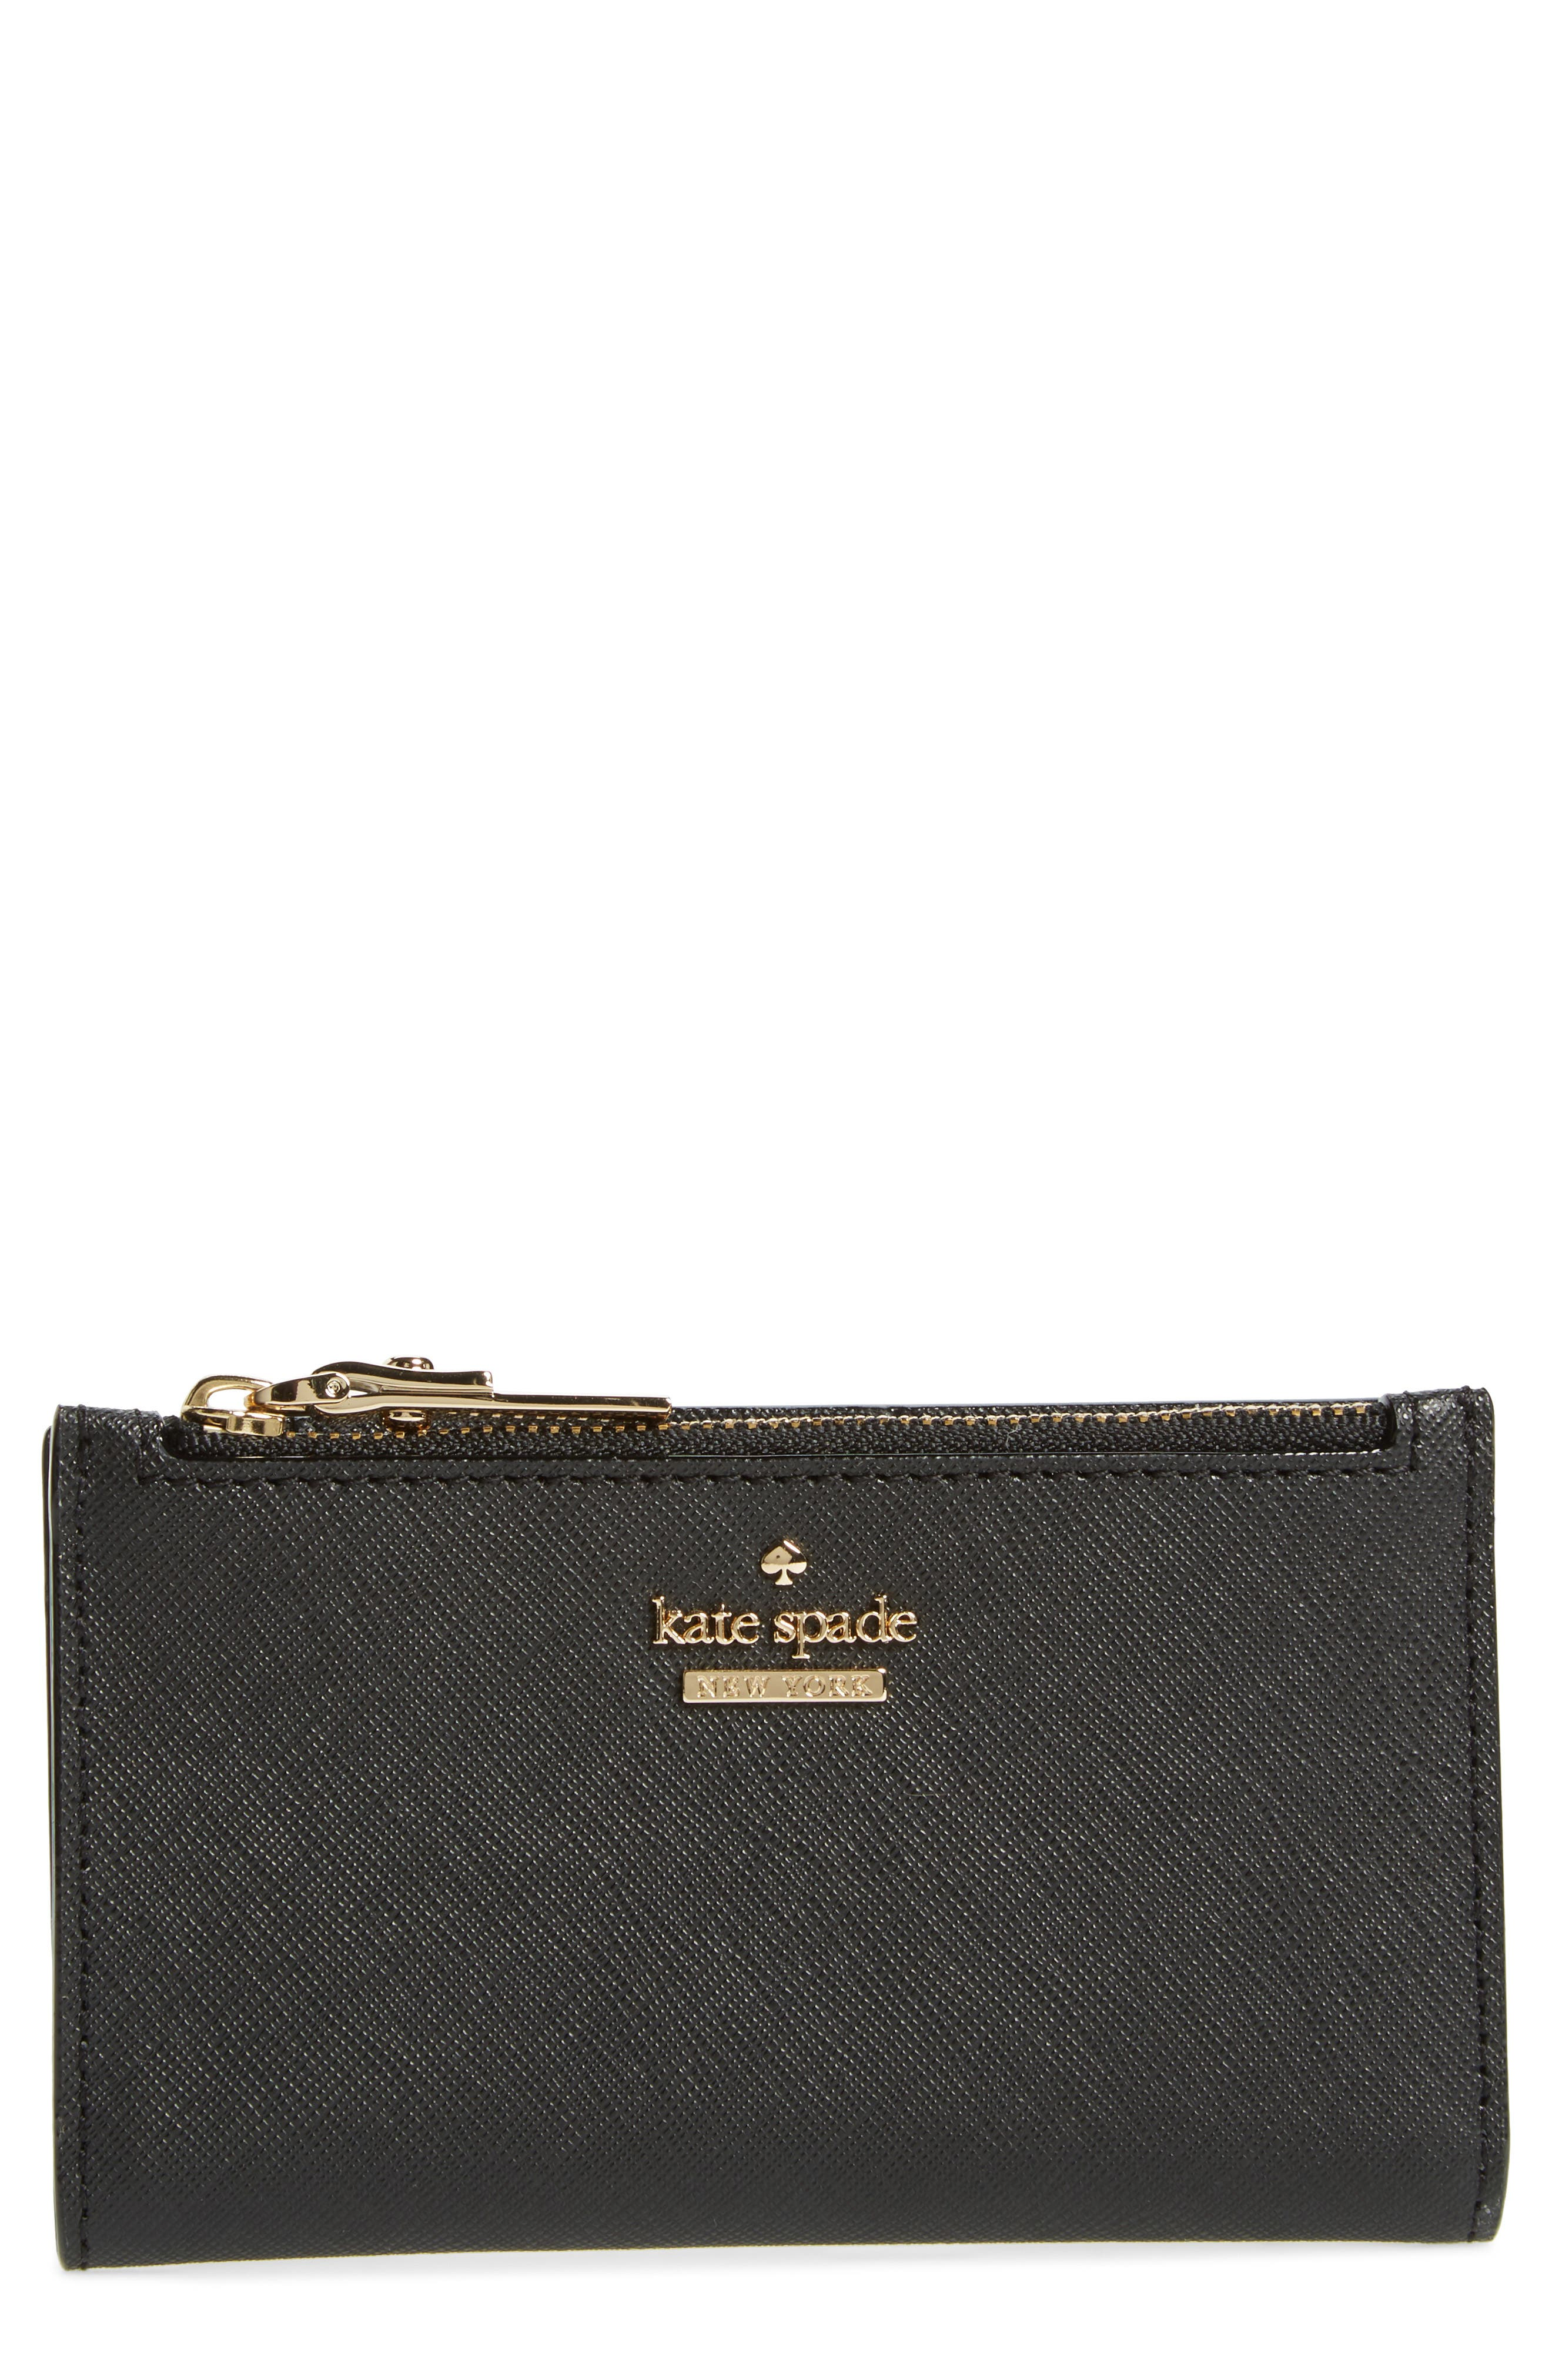 cameron street - mikey leather wallet,                         Main,                         color, Black